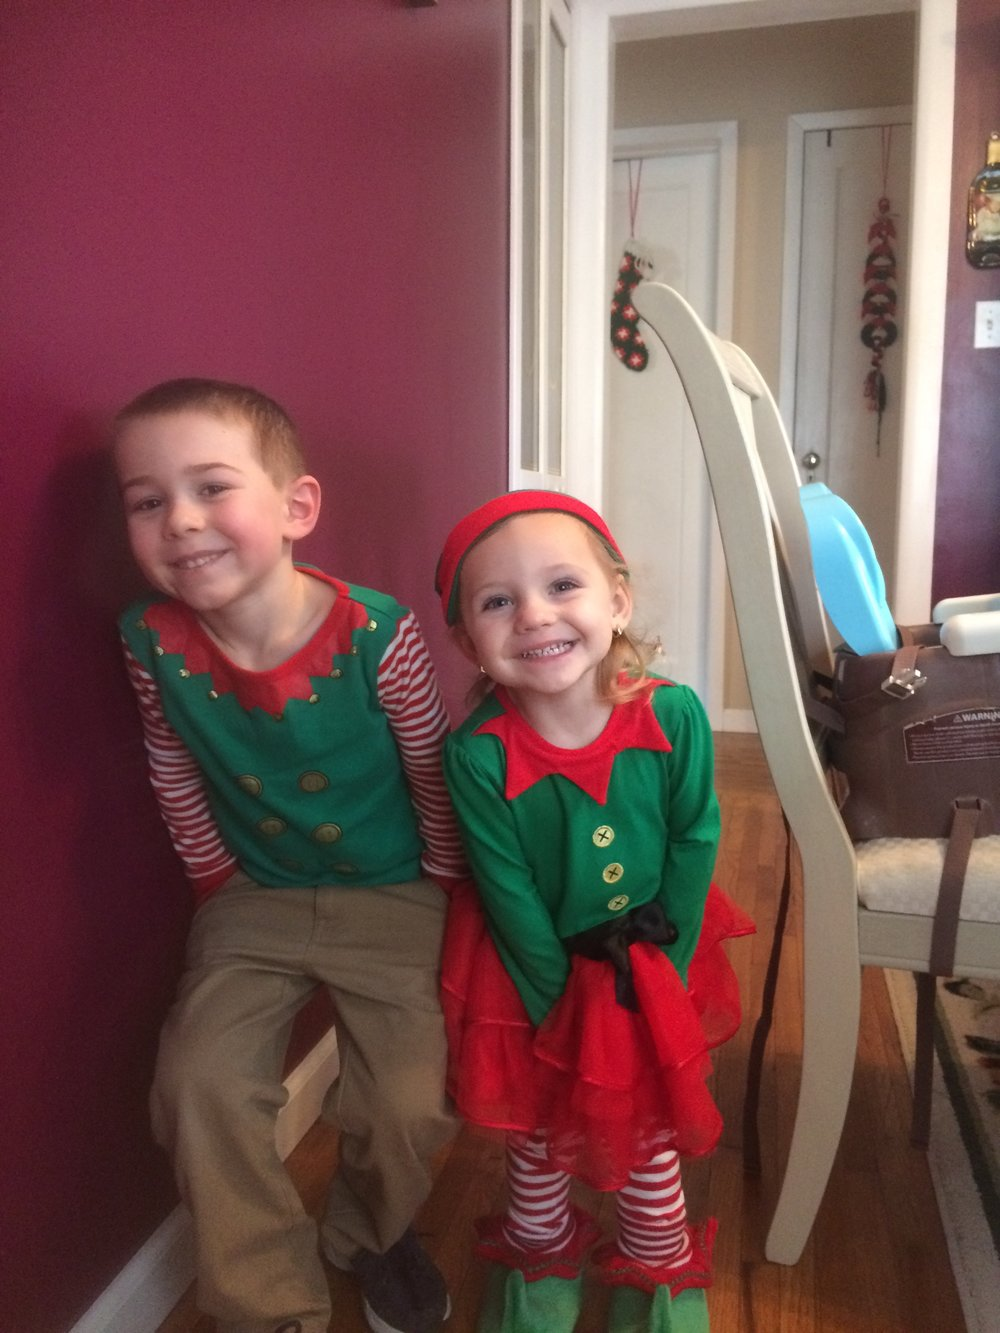 Elves in the house!